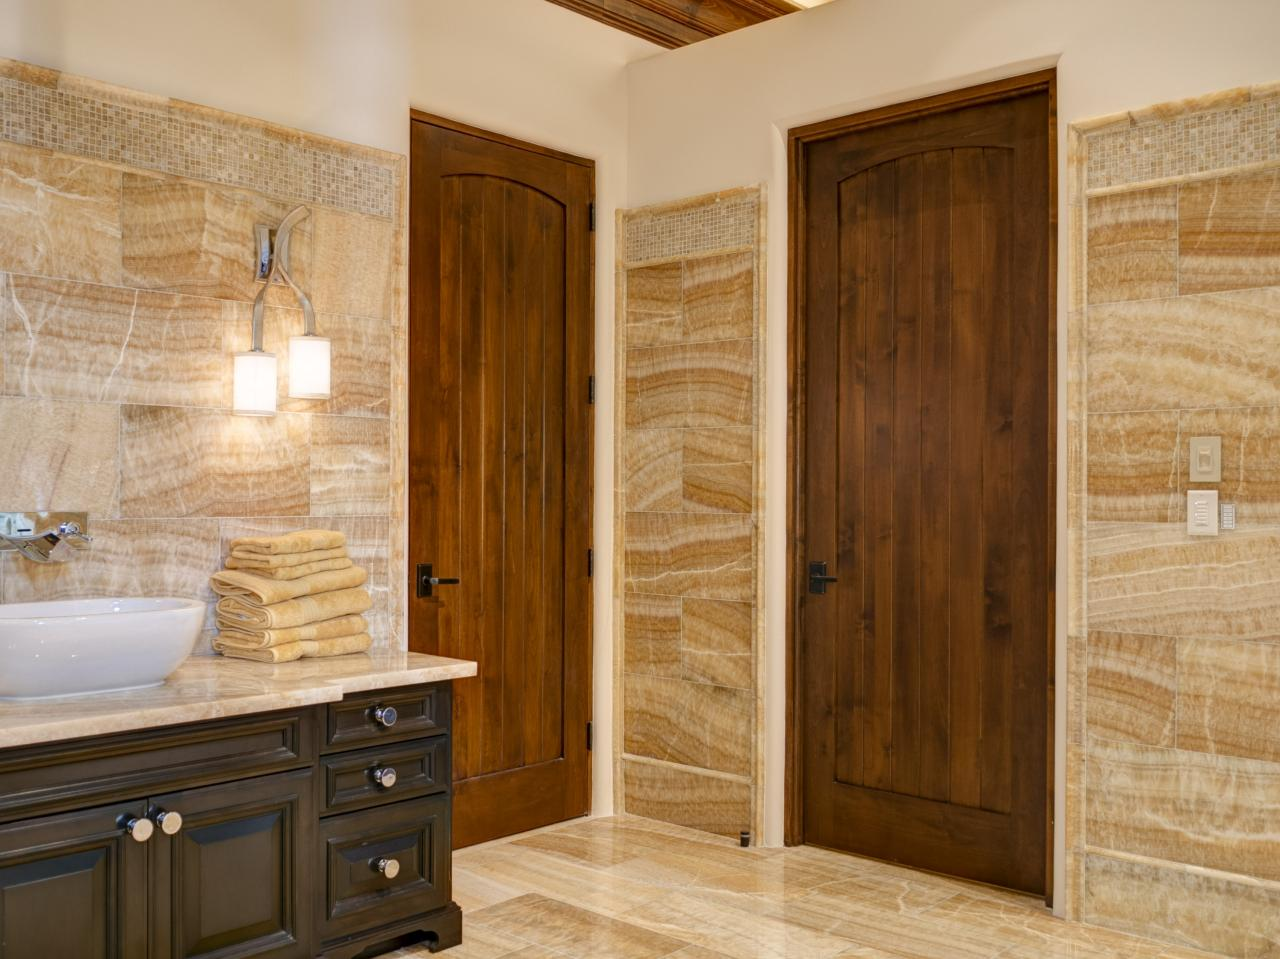 VG1030 Bathroom Doors In Alder